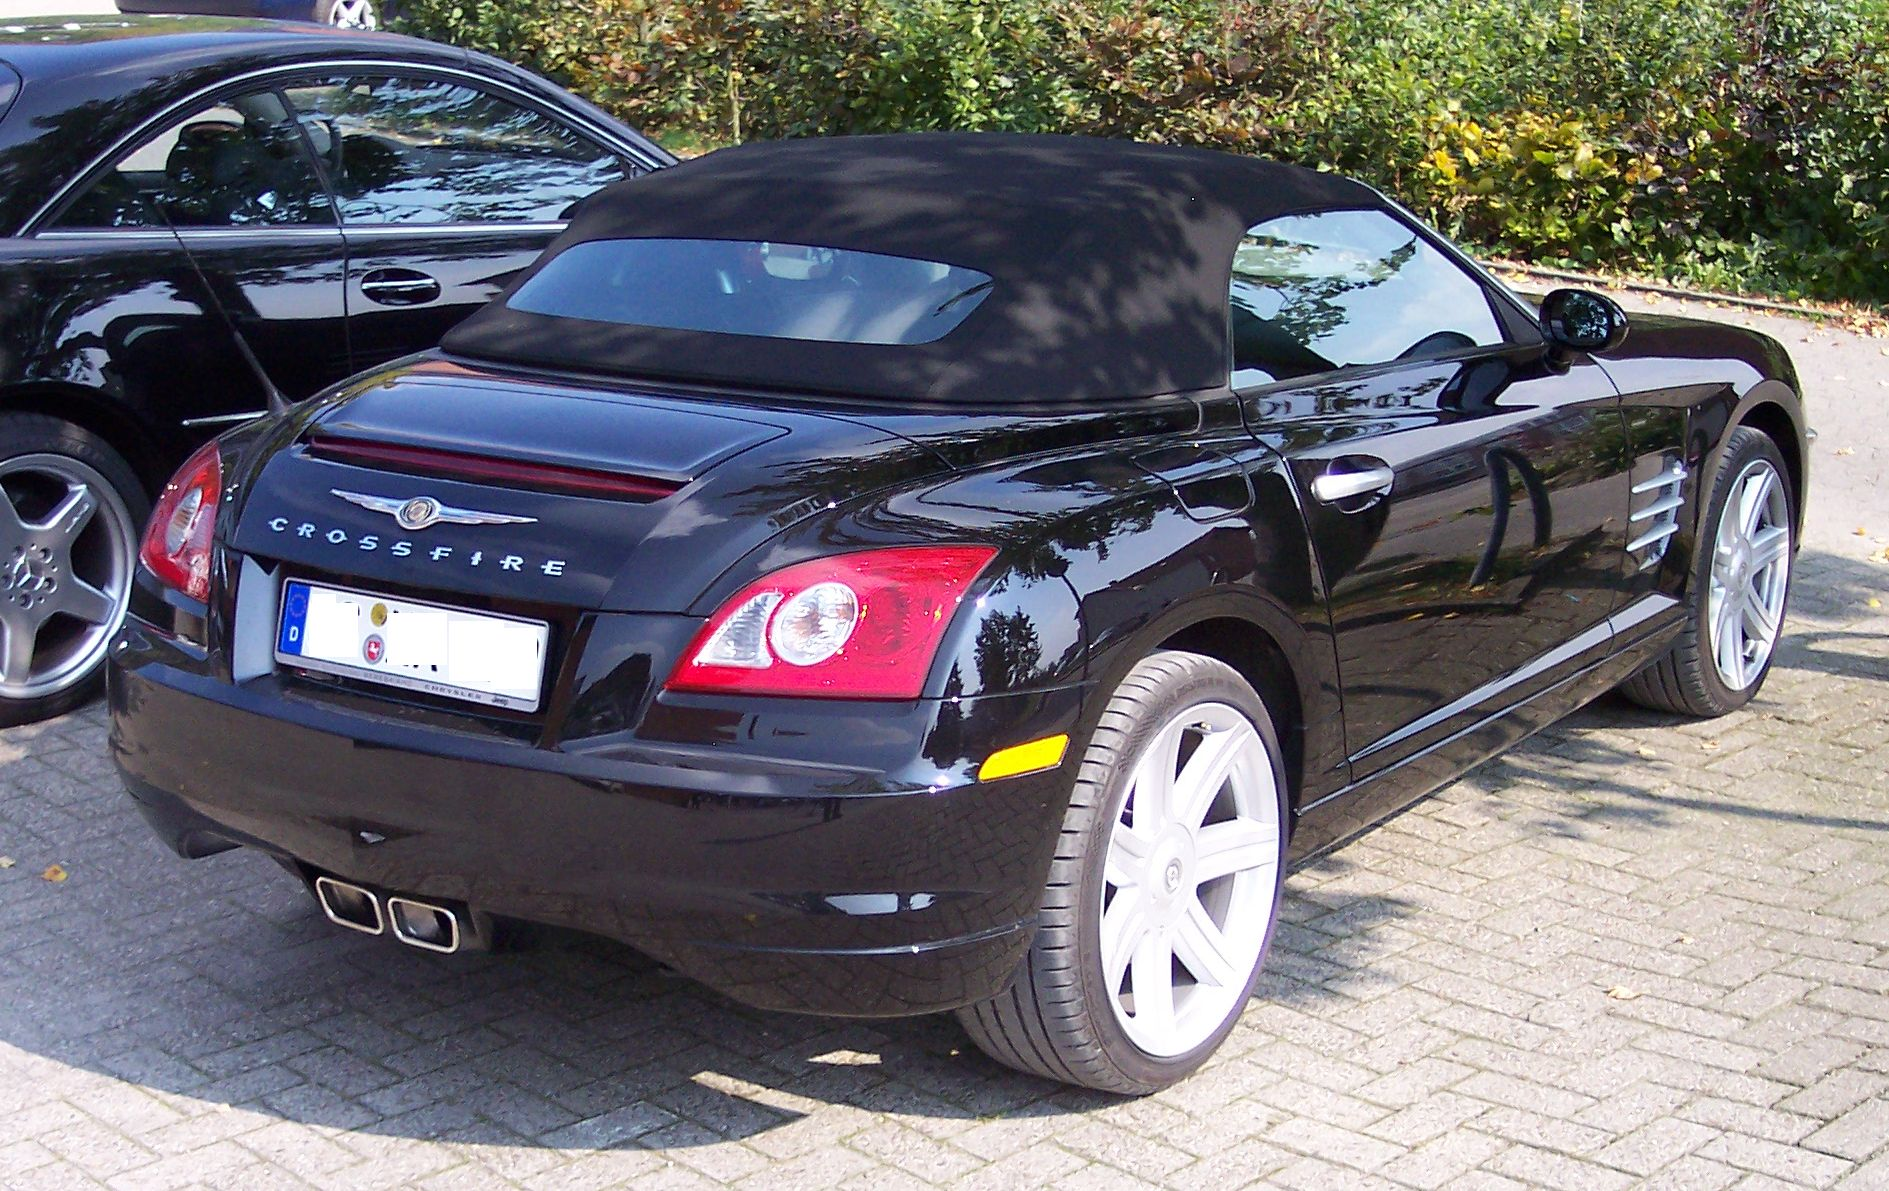 file chrysler crossfire cabrio black. Black Bedroom Furniture Sets. Home Design Ideas